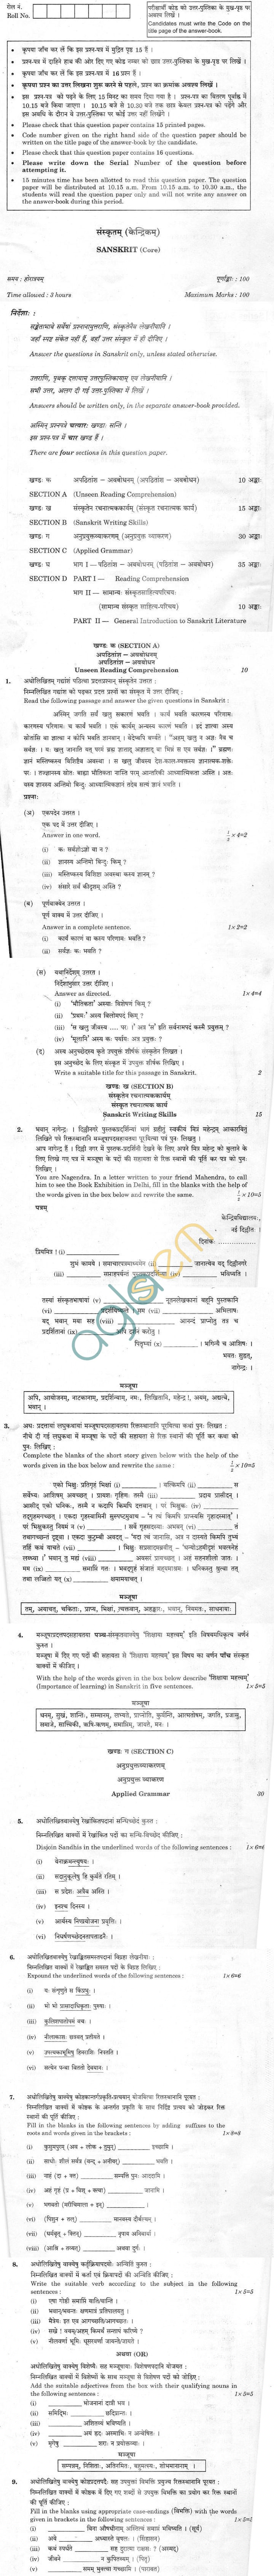 CBSE Compartment Exam 2013 Class XII Question Paper - Sanskrit (Core)